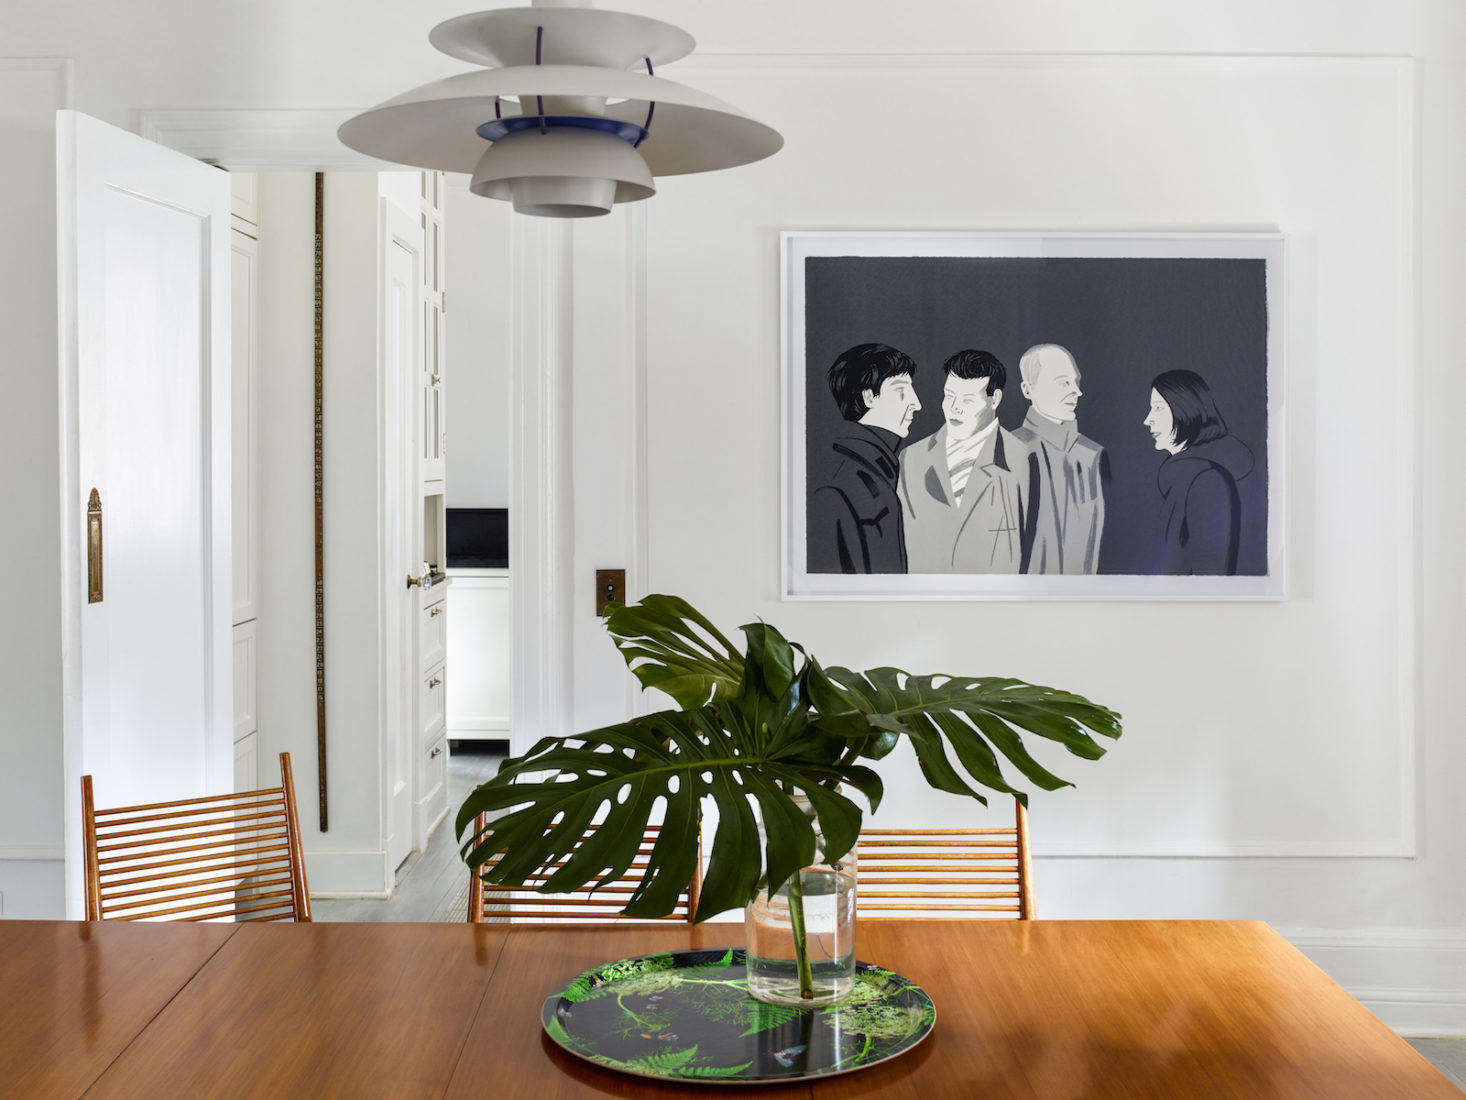 The dining set takes the spotlight in this room, but a screenprint by artist Alex Katz is also an attention-getter. On the table is a melamine-coated birch Dill Black Wood Tray by Michael Angove.